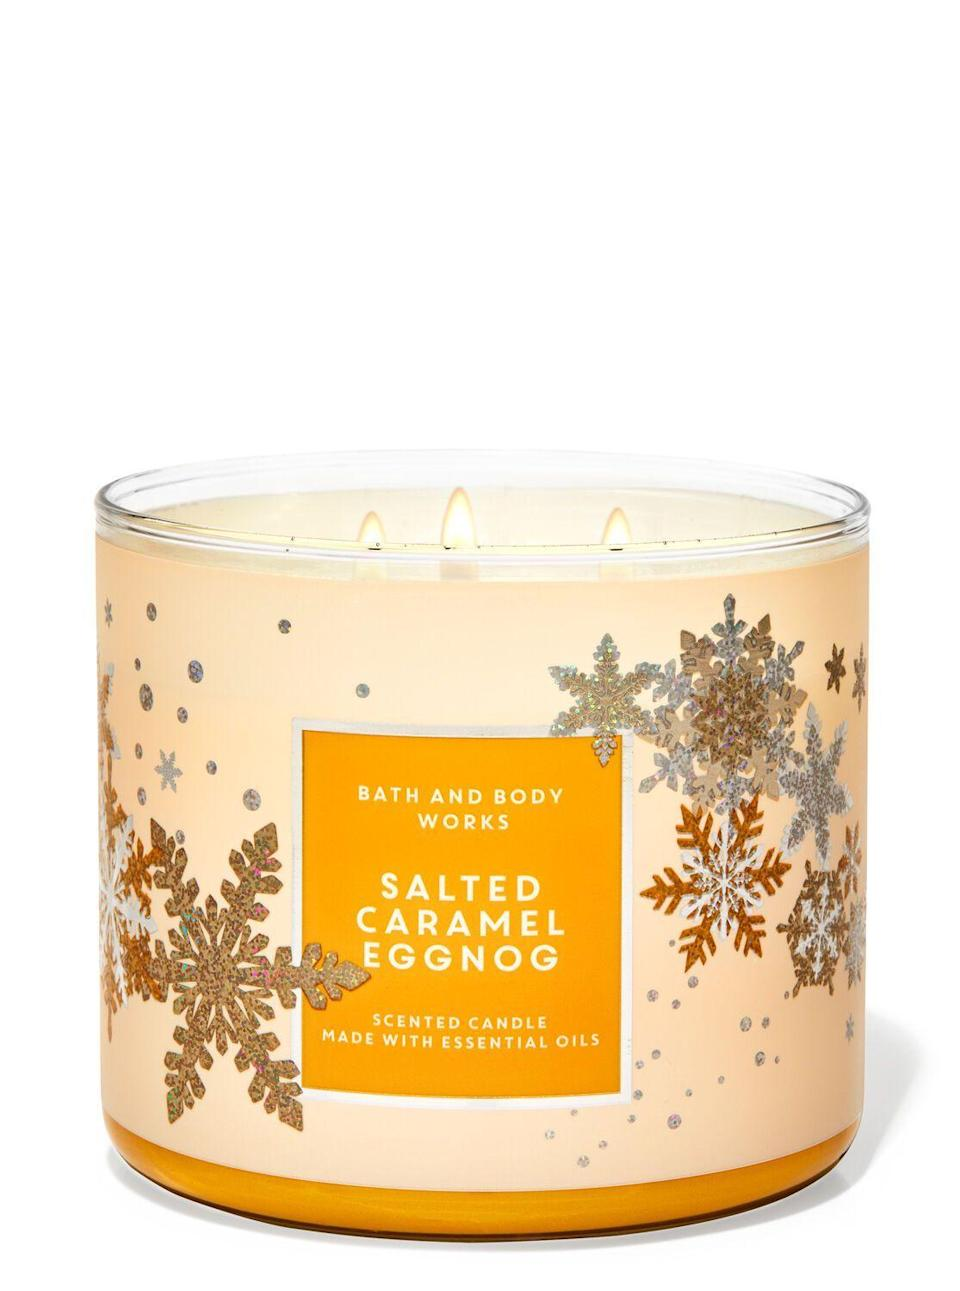 "<p><strong>Bath & Body Works</strong></p><p>Bath & Body Works</p><p><strong>$14.50</strong></p><p><a href=""https://www.bathandbodyworks.com/p/salted-caramel-eggnog-3-wick-candle-026178788.html?cgid=3-wick-candles#start=52&sz=48"" rel=""nofollow noopener"" target=""_blank"" data-ylk=""slk:Shop Now"" class=""link rapid-noclick-resp"">Shop Now</a></p><p>Fair warning: You can't get anything productive done while burning this delight. Sorry, I don't make the rules. Bath & Body Works does. </p>"